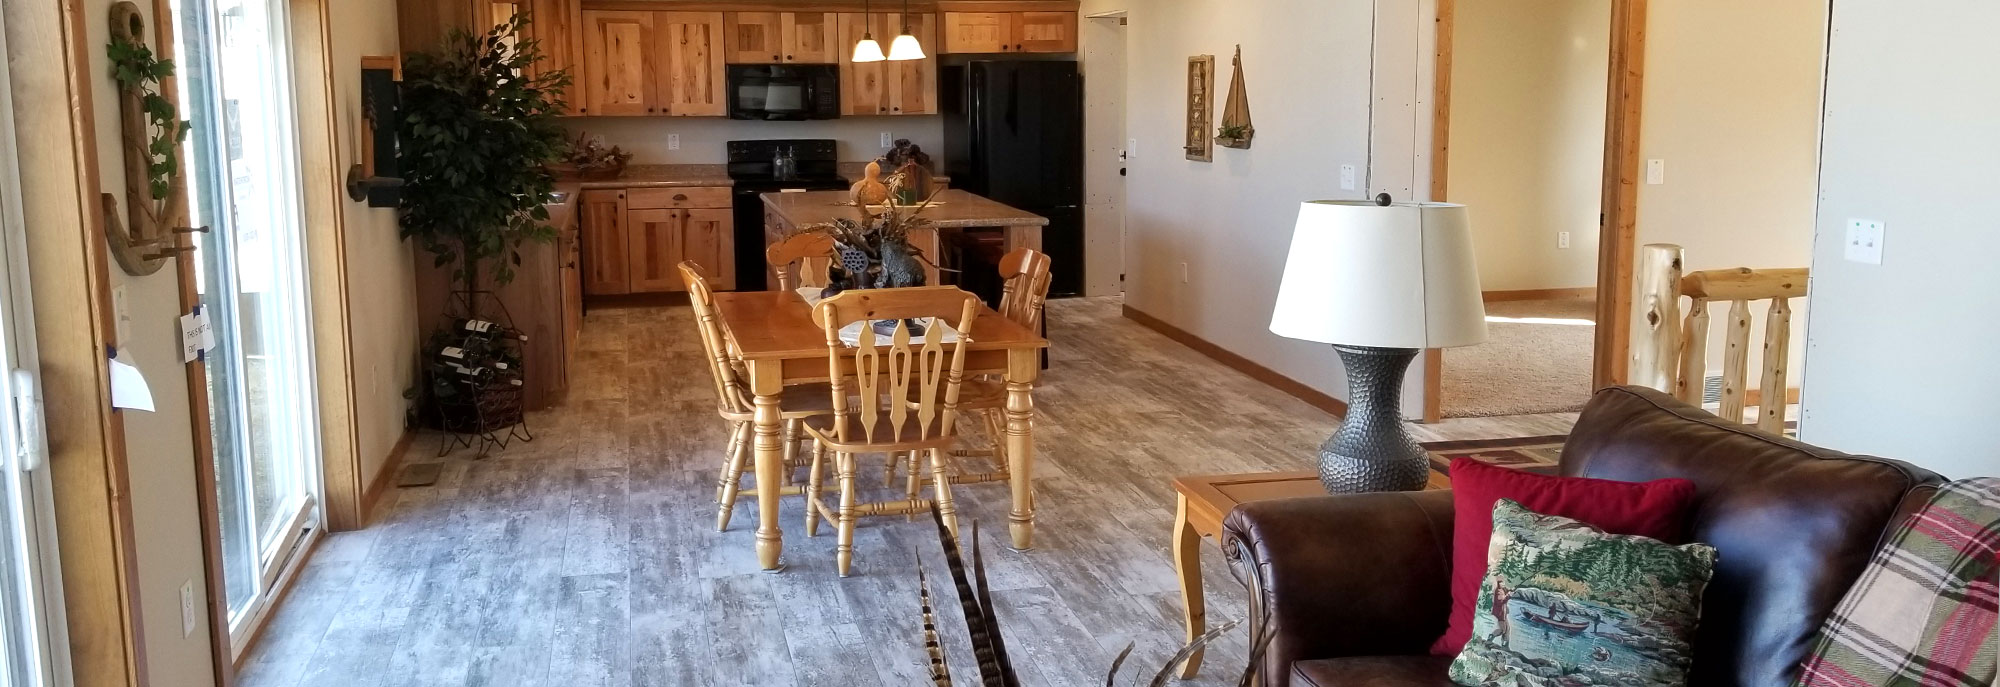 The kitchen, living and dining open concept of the Hudson Model Modular Home built by Factory Home Center